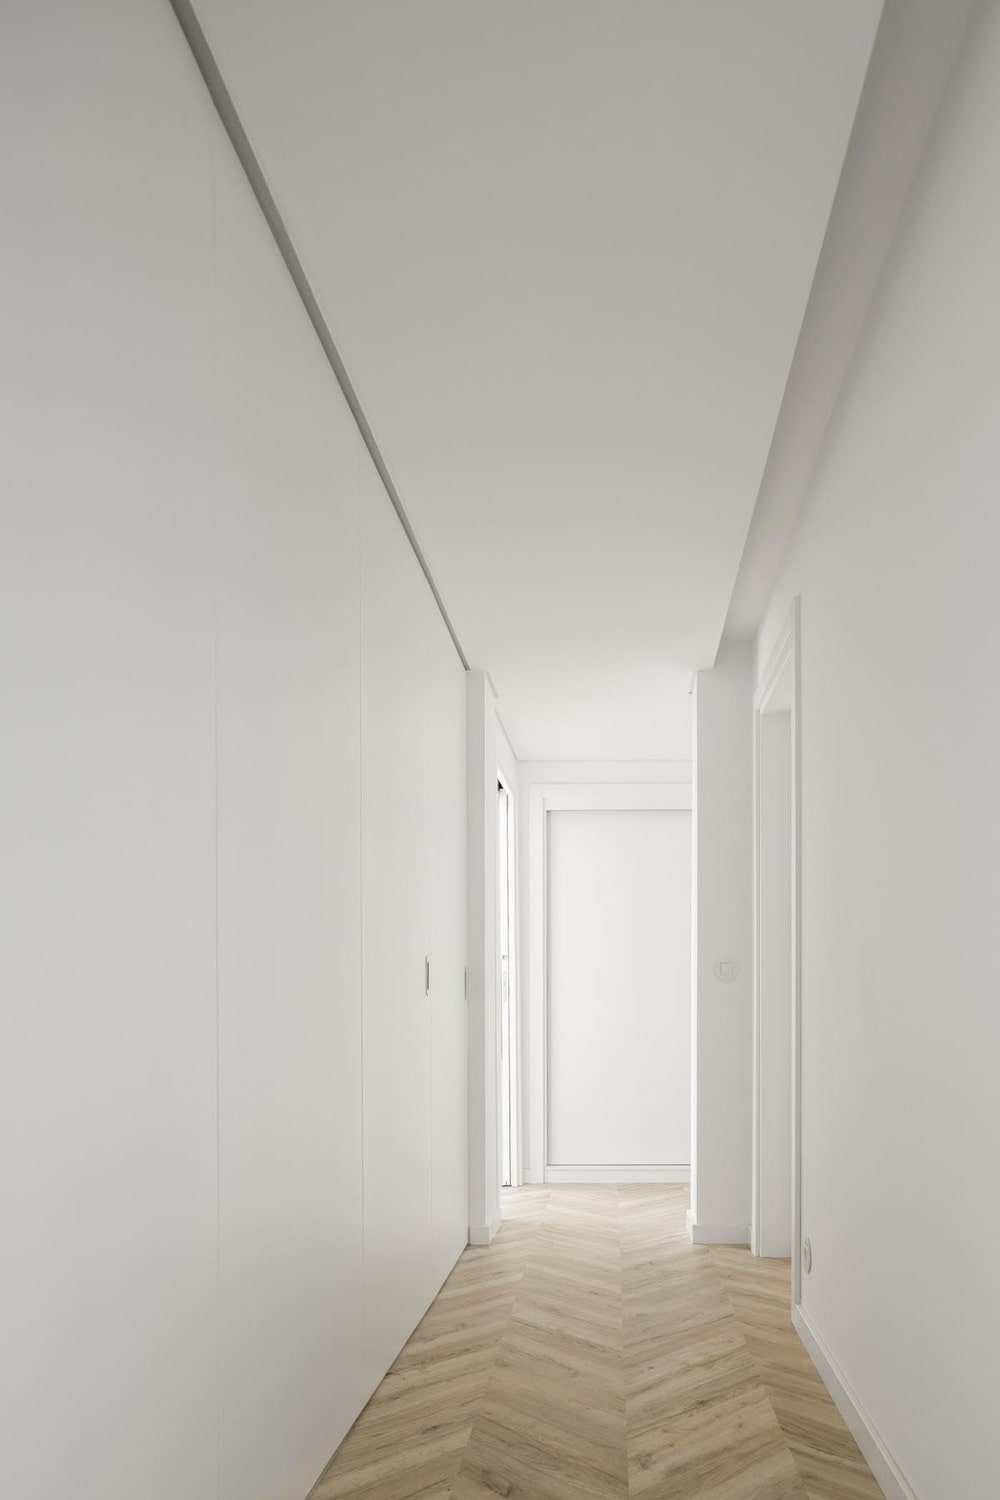 This is the hallway that is formed when the folding doors are closed.